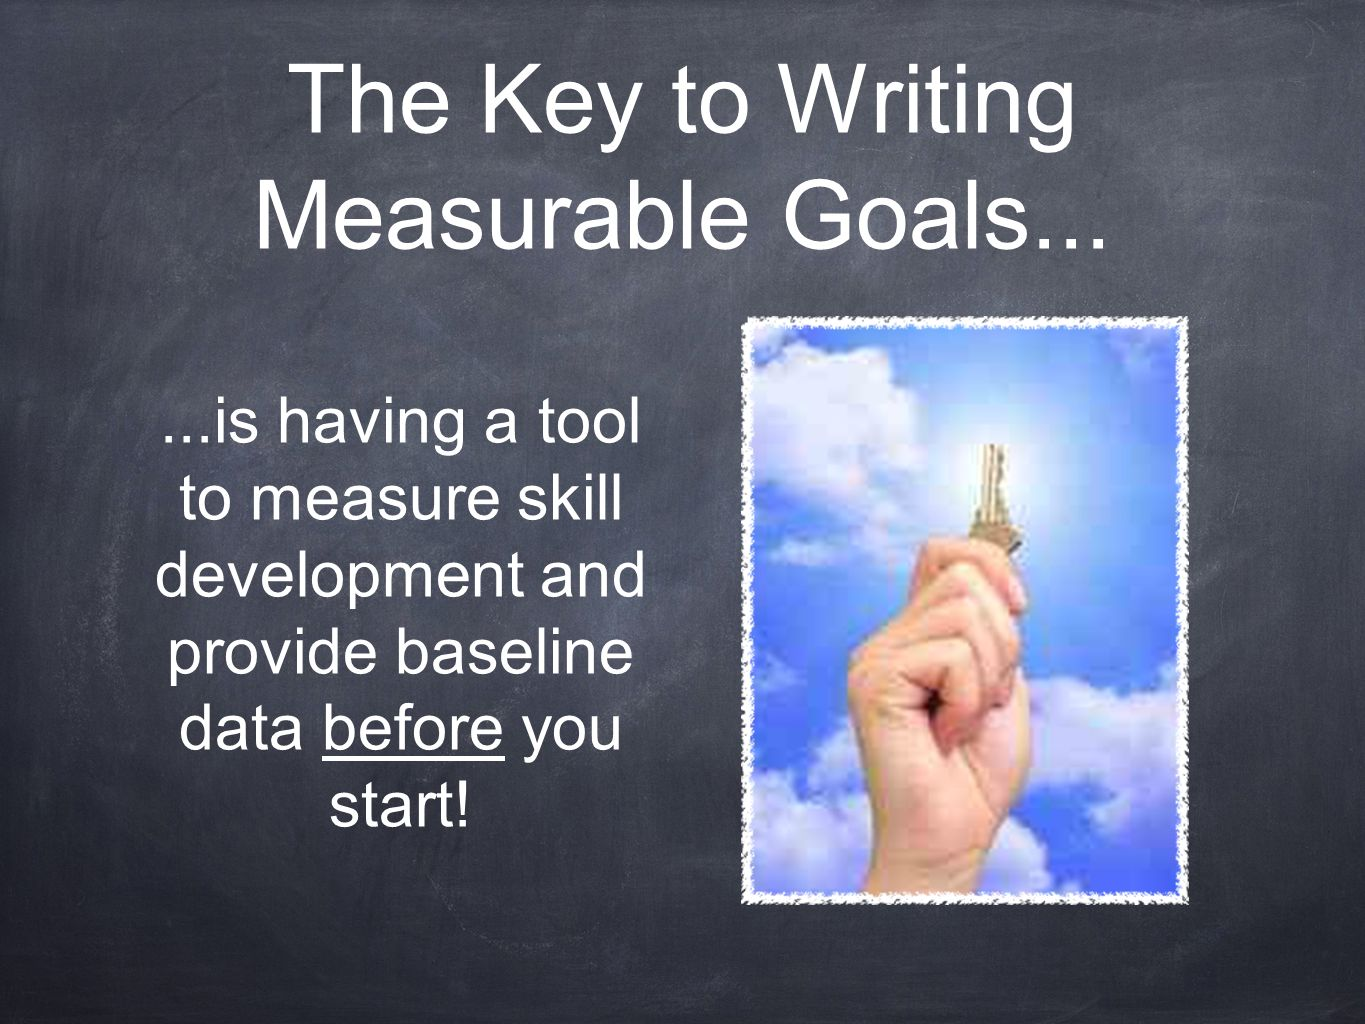 The Key to Writing Measurable Goals......is having a tool to measure skill development and provide baseline data before you start!